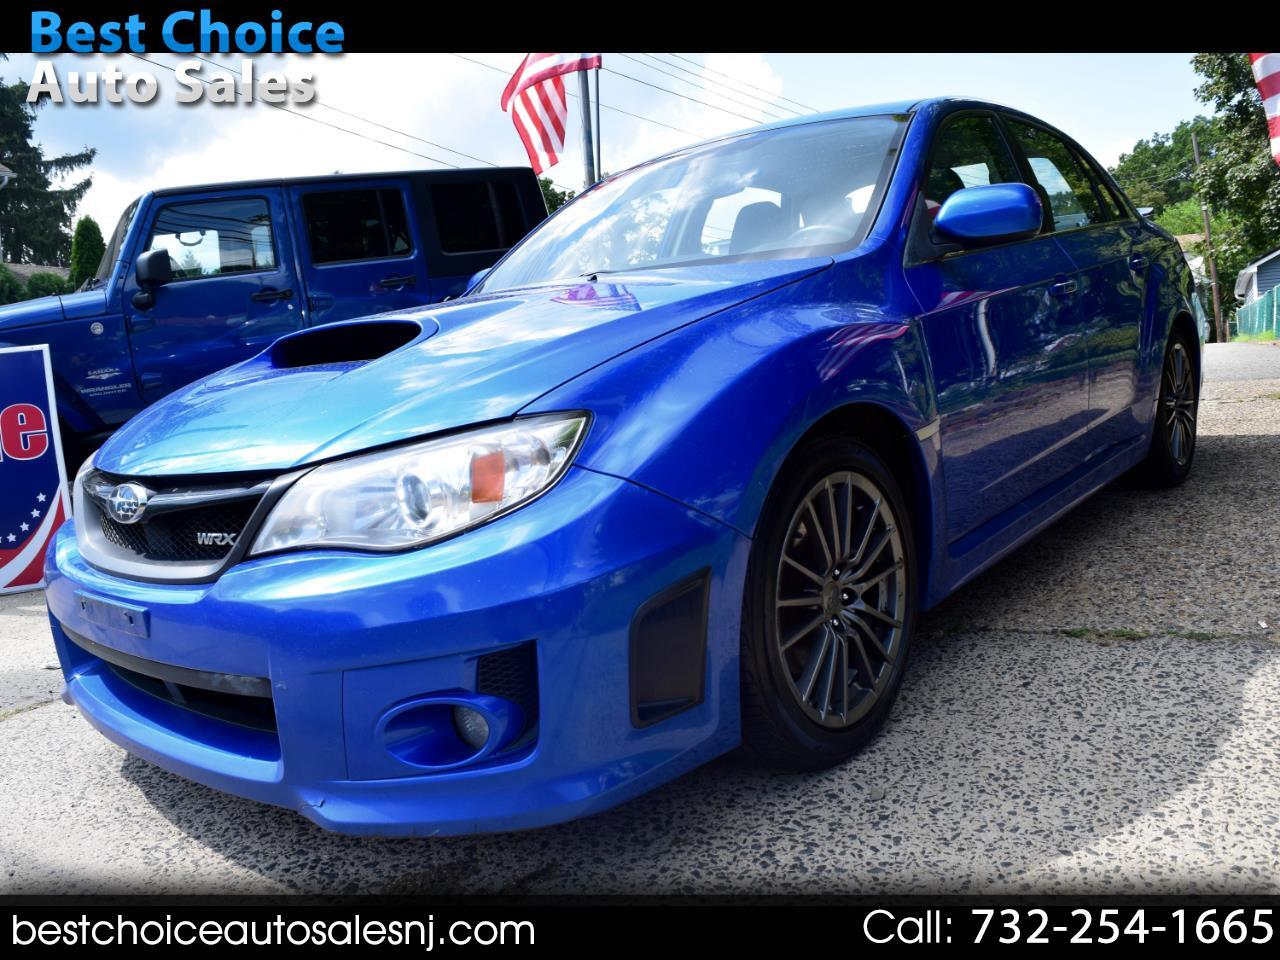 Subaru Impreza Sedan WRX 4dr Man WRX Limited 2013